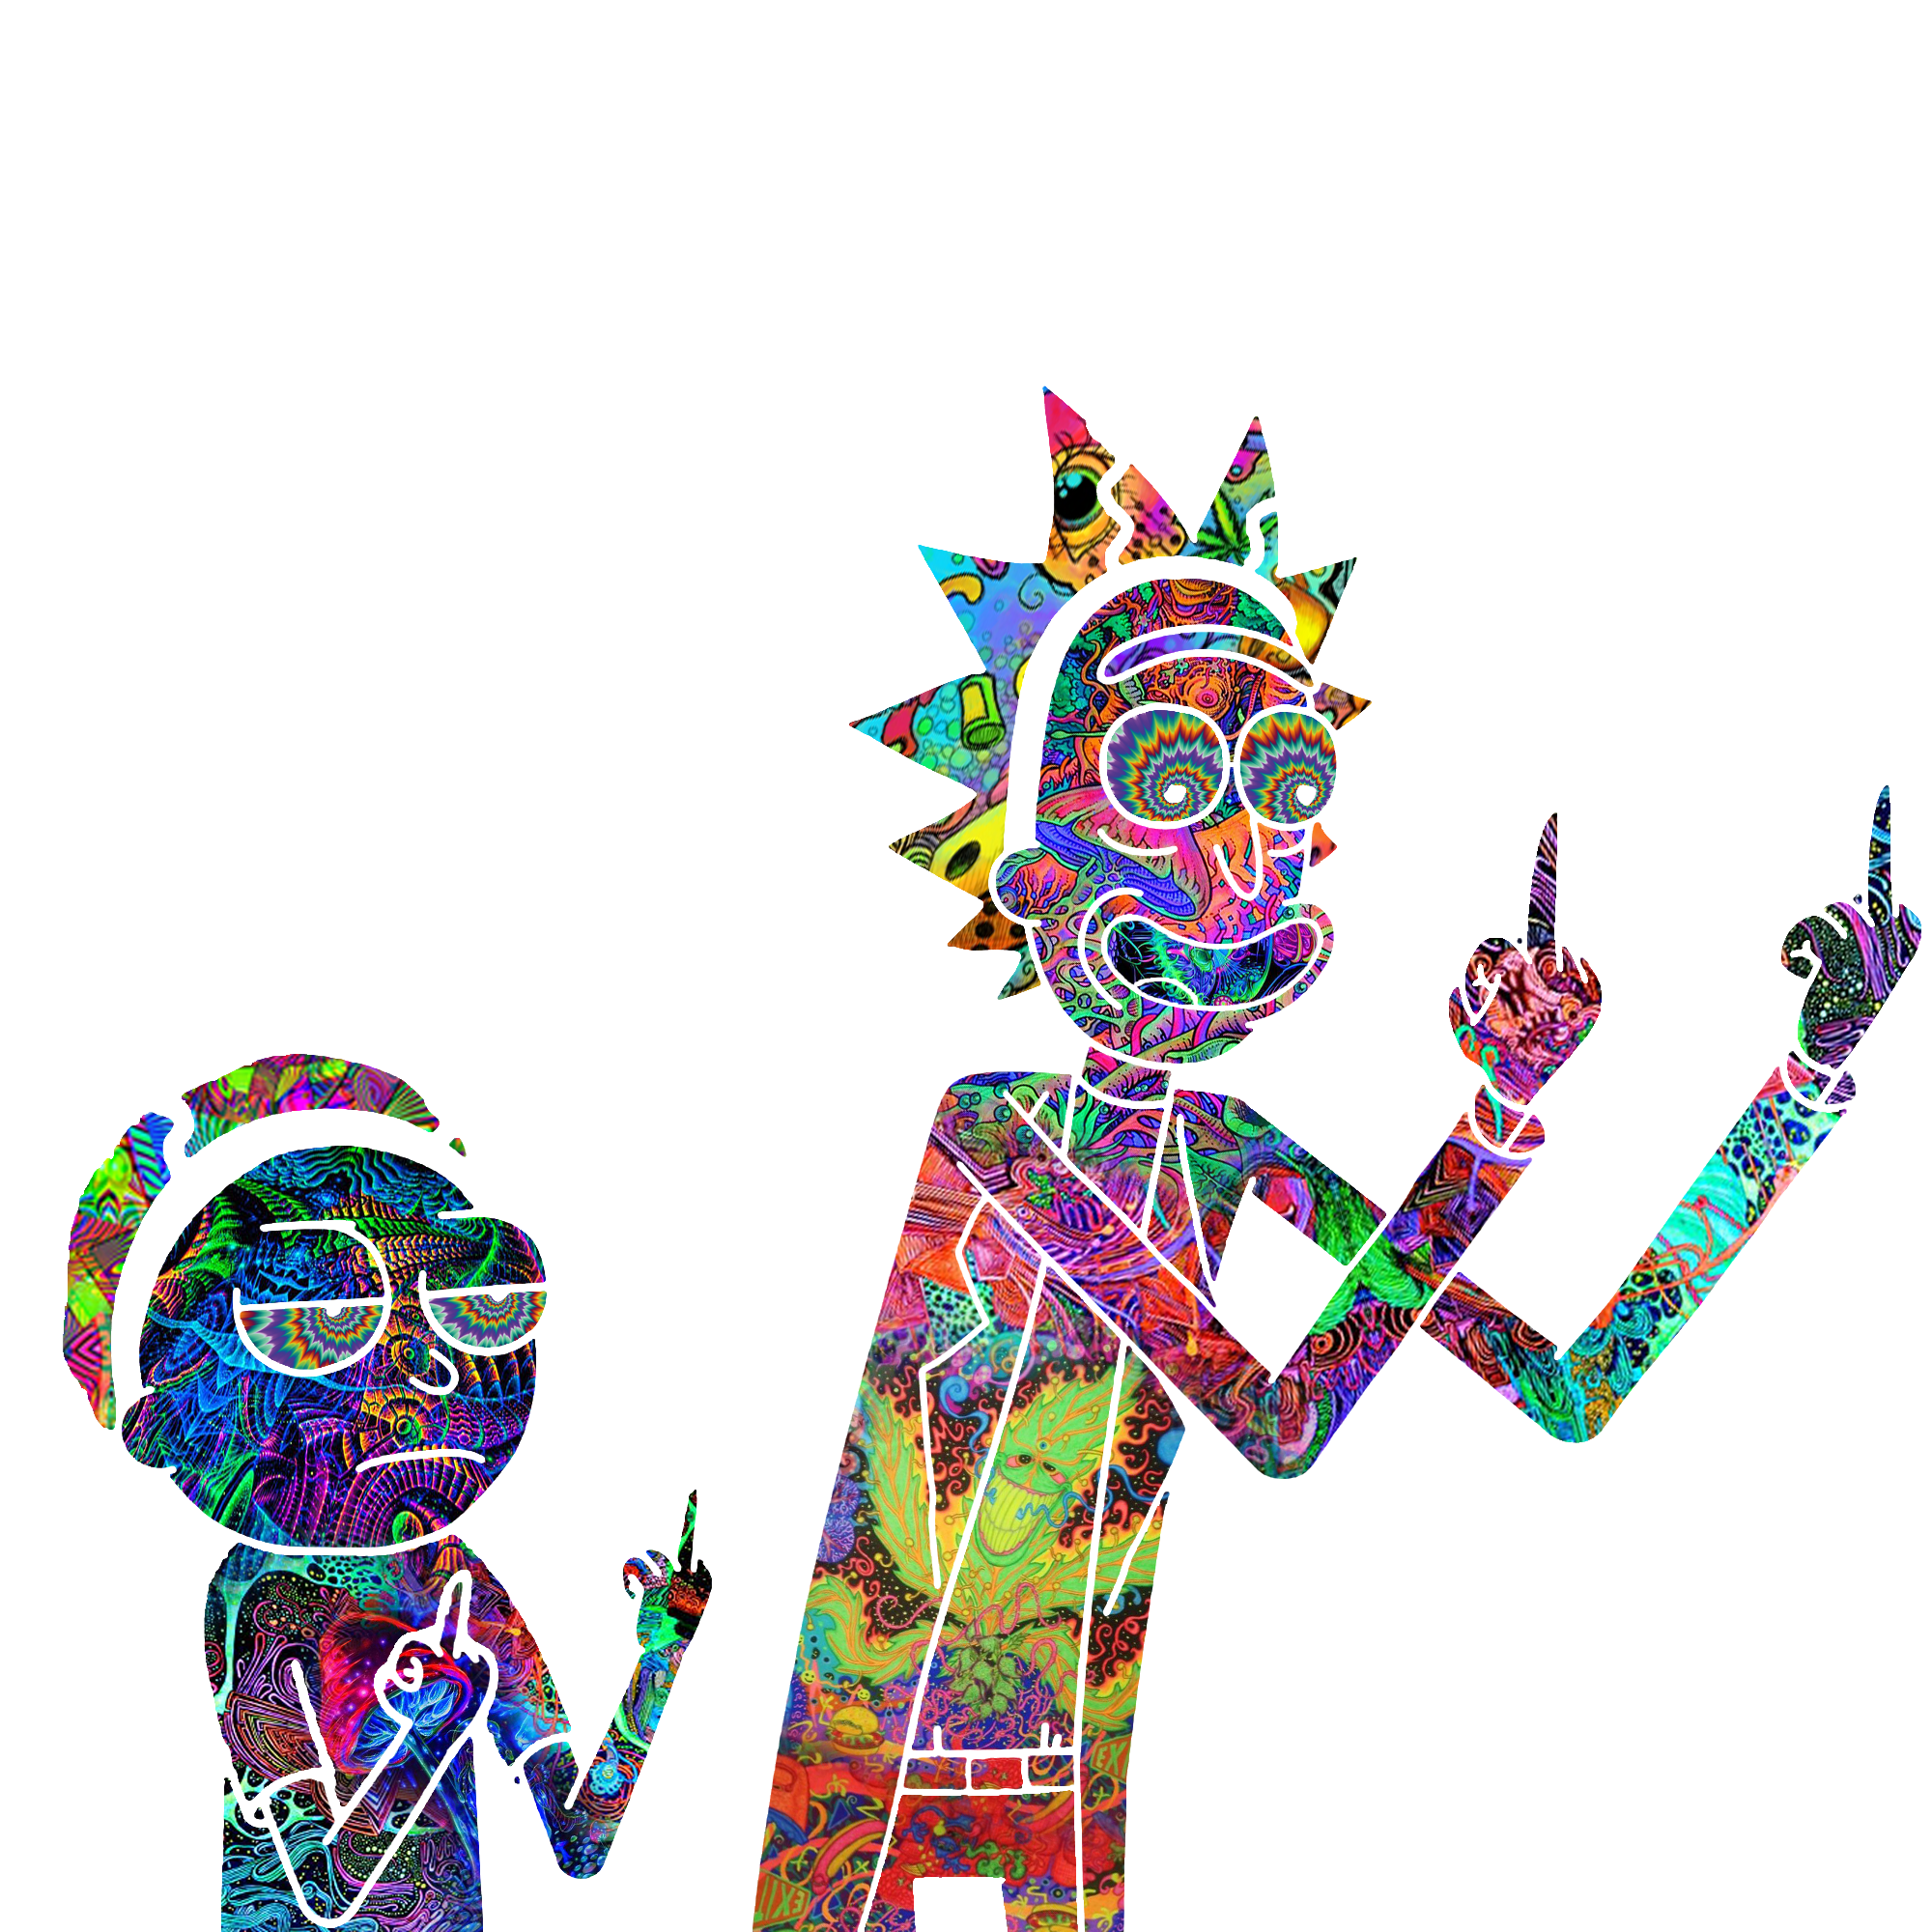 Rick and Morty trippy render by Shiro-420 on DeviantArt